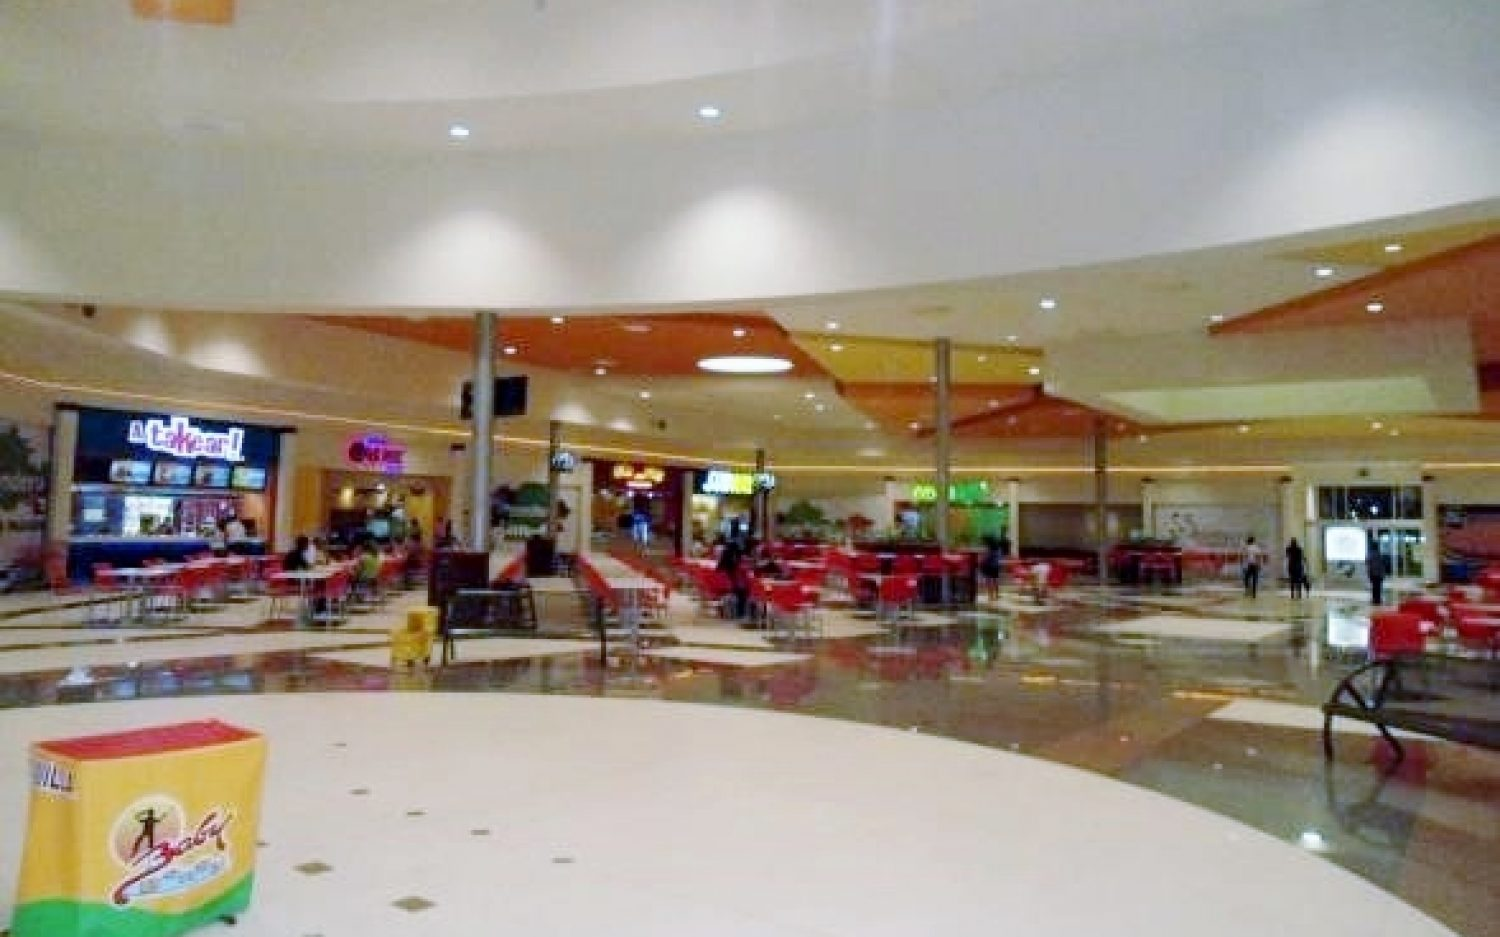 Co-Plaza Sendero Villahermosa (51)